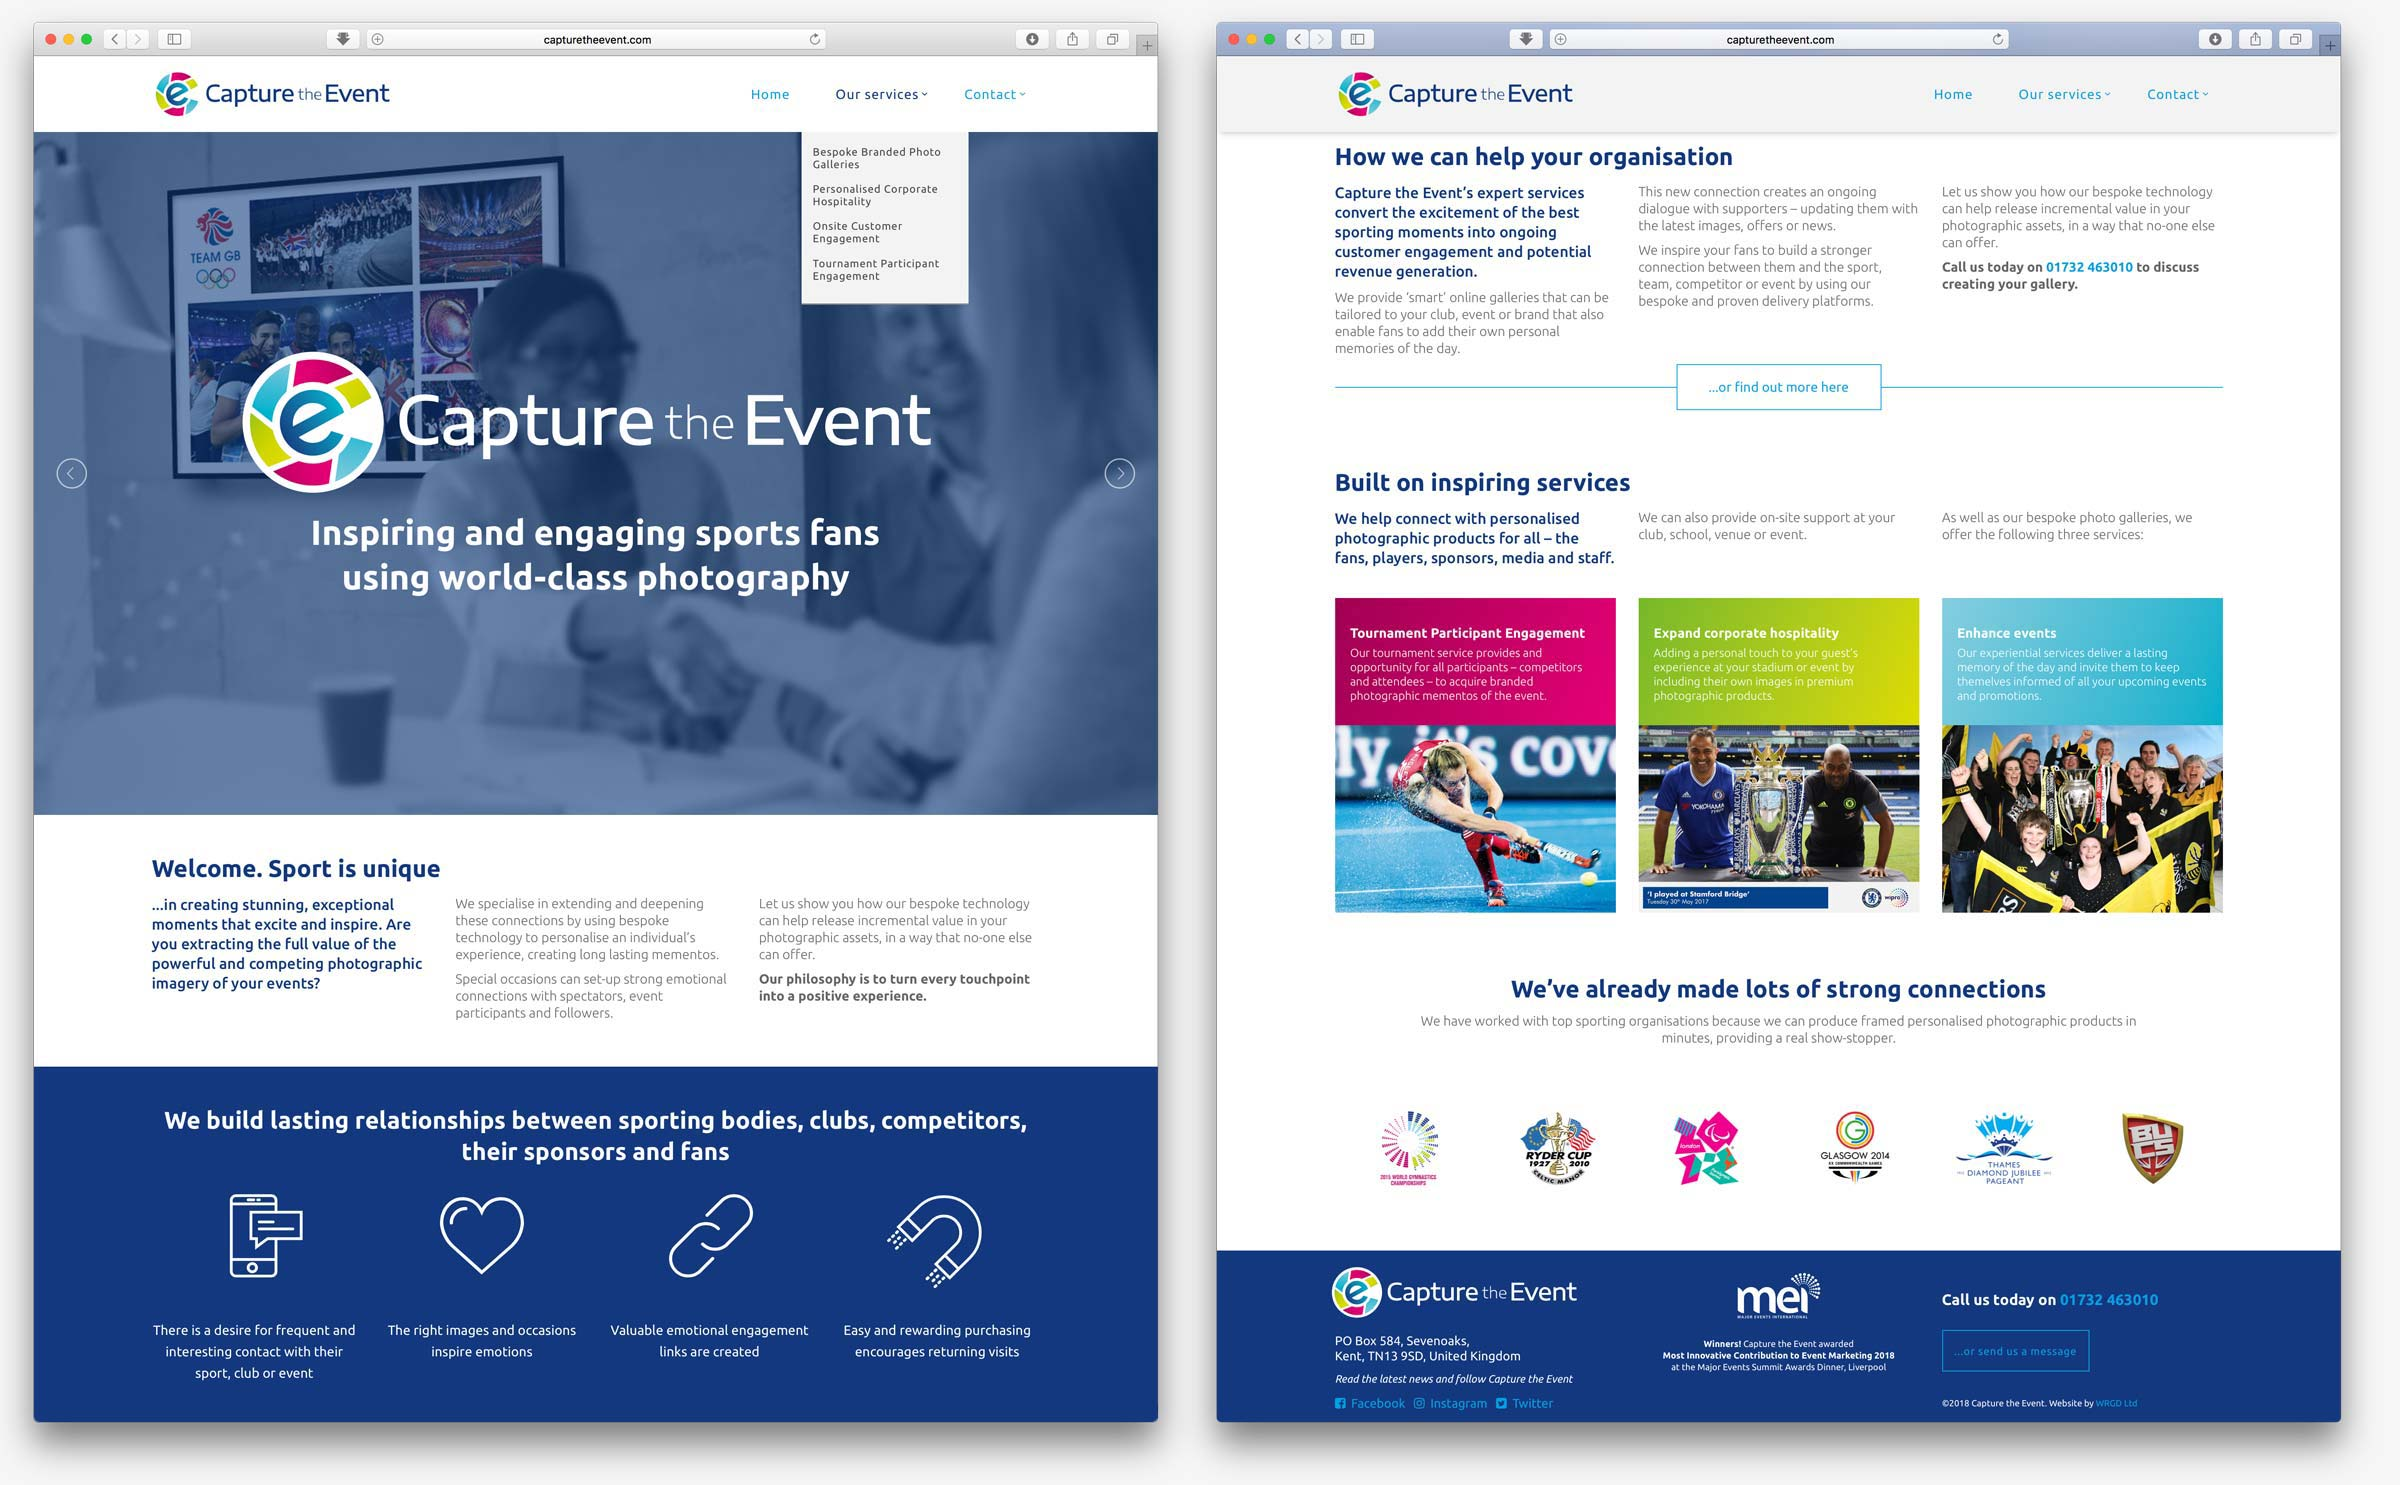 Capture the Event website